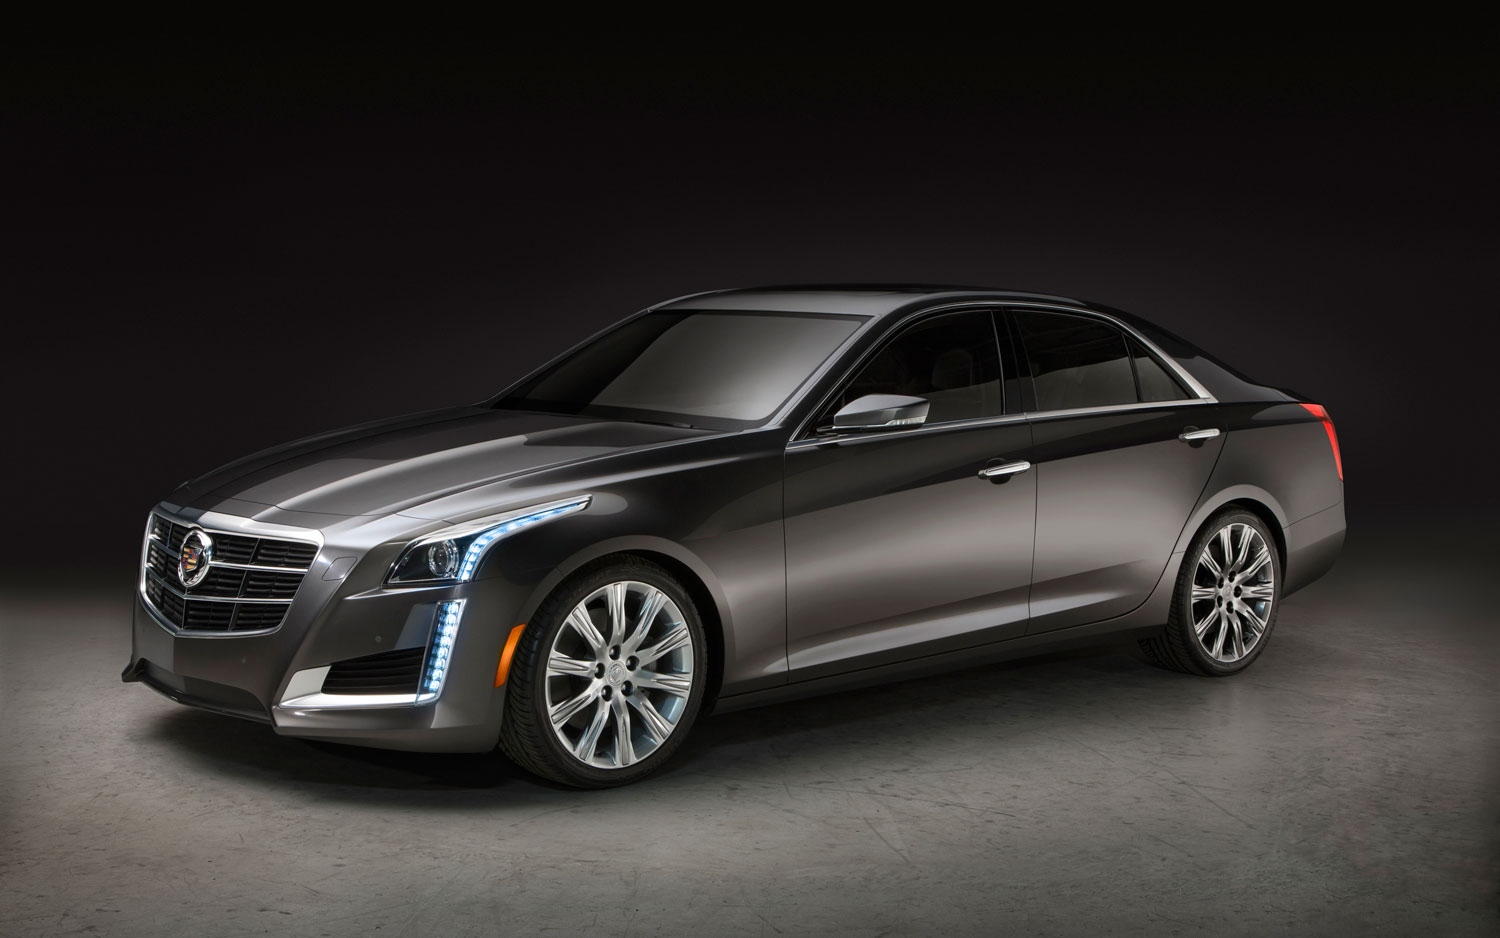 2014 cadillac cts sedan new cars reviews. Black Bedroom Furniture Sets. Home Design Ideas